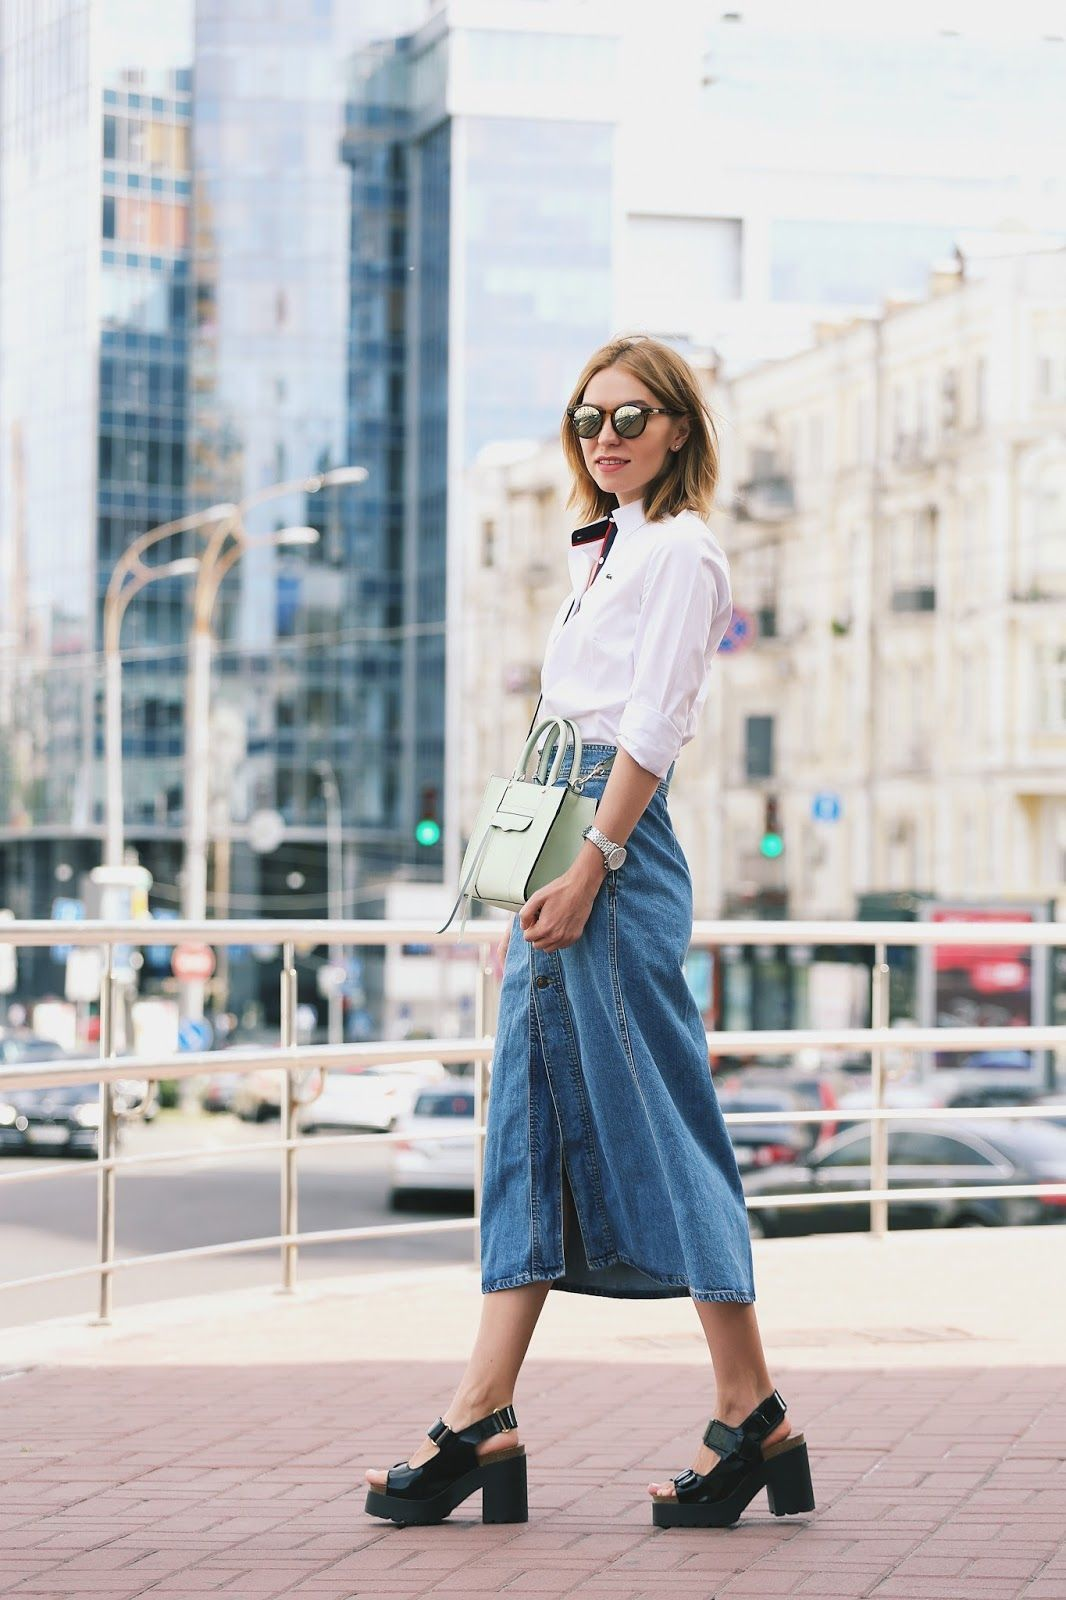 "Foto: Reprodução / <a href=""http://www.allaboutaccent.com/2015/07/spotted-denim-skirt.html "" target=""_blank"">All about accent</a>"